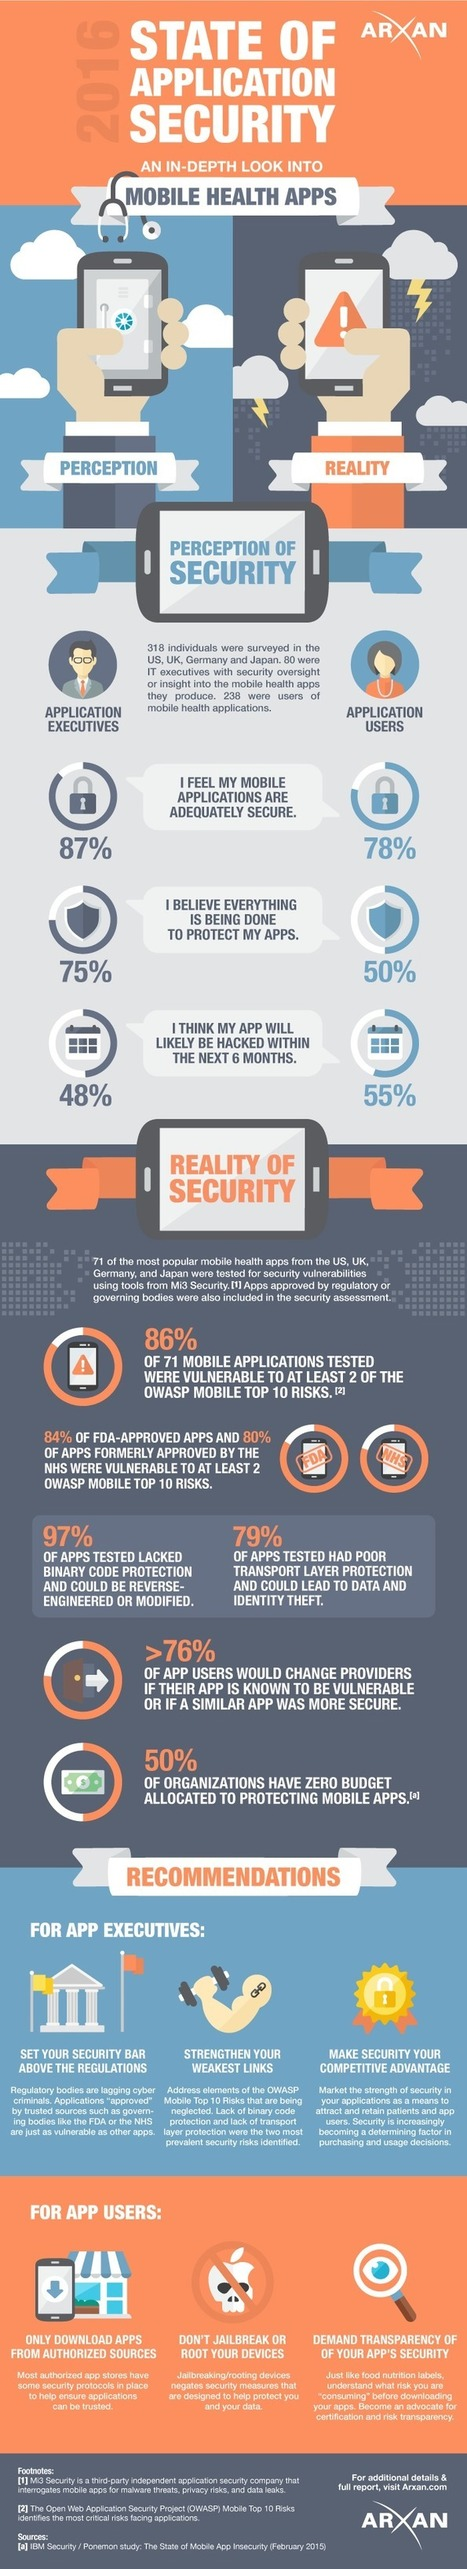 Infographic: 2016 State of Mobile Health App Security | Social Media, Mobile, Wearable News & Views | Scoop.it